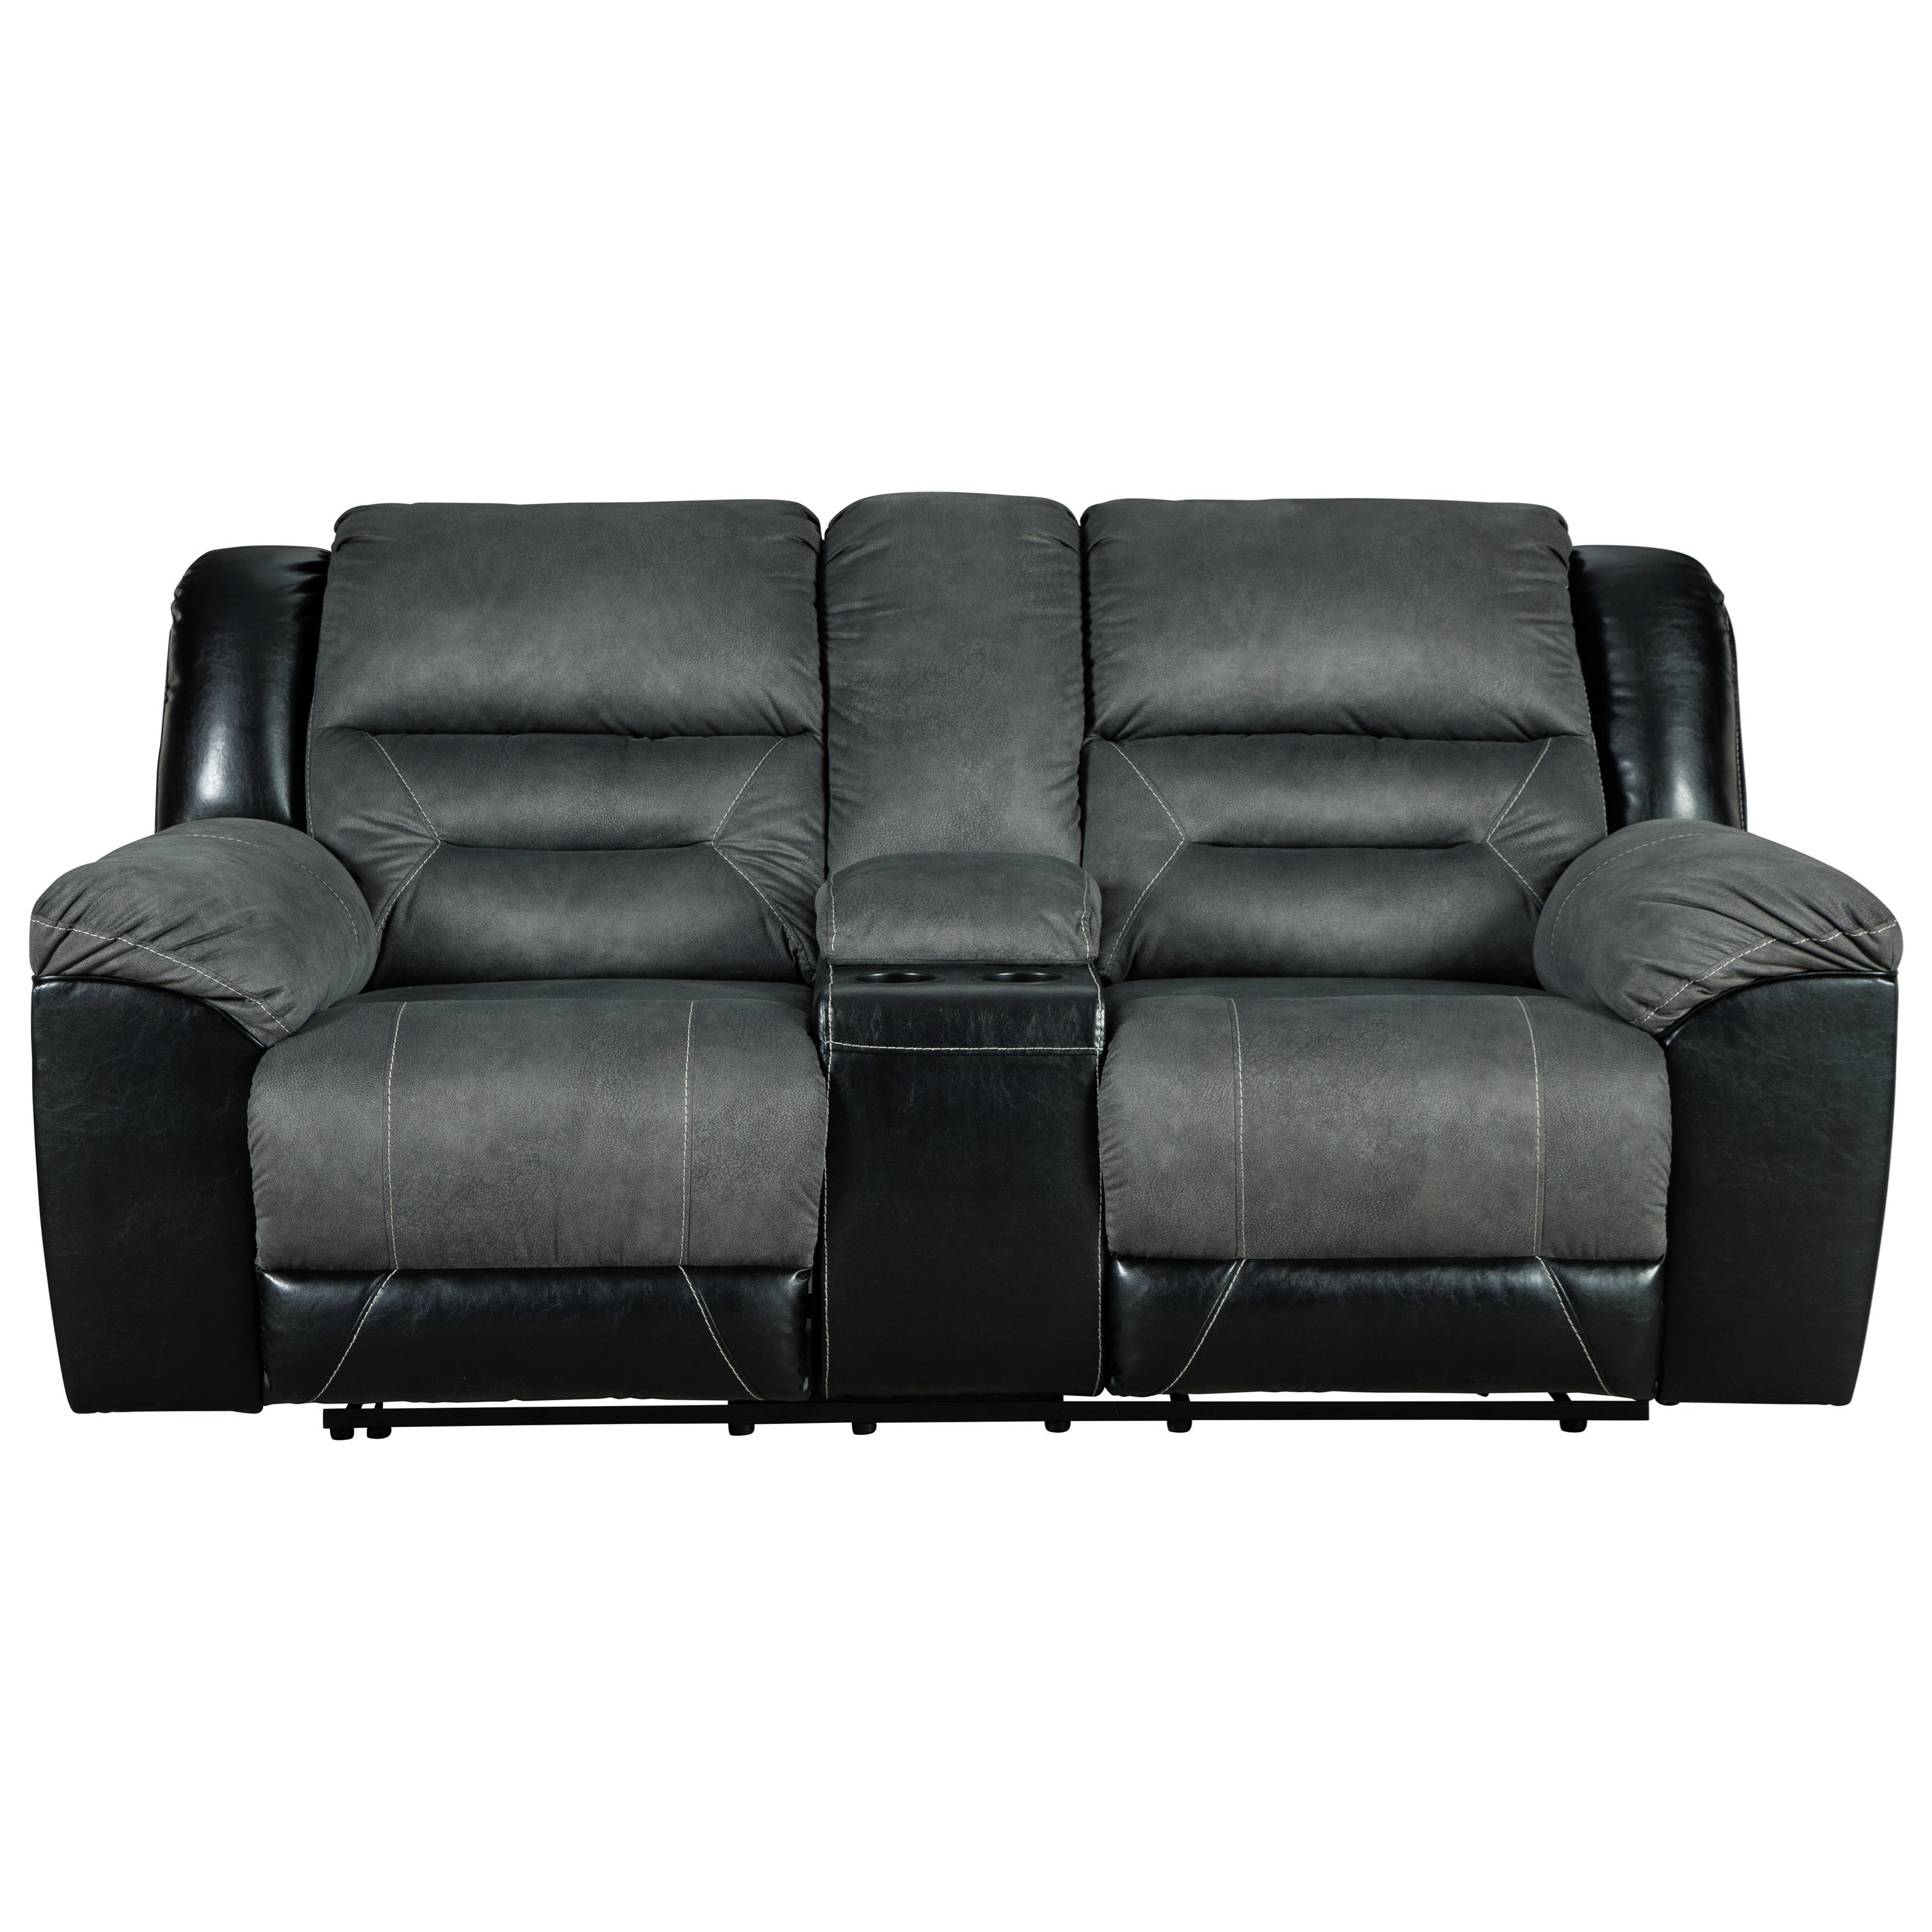 Earhart Reclining Loveseat with Console by Signature Design by Ashley at Houston's Yuma Furniture